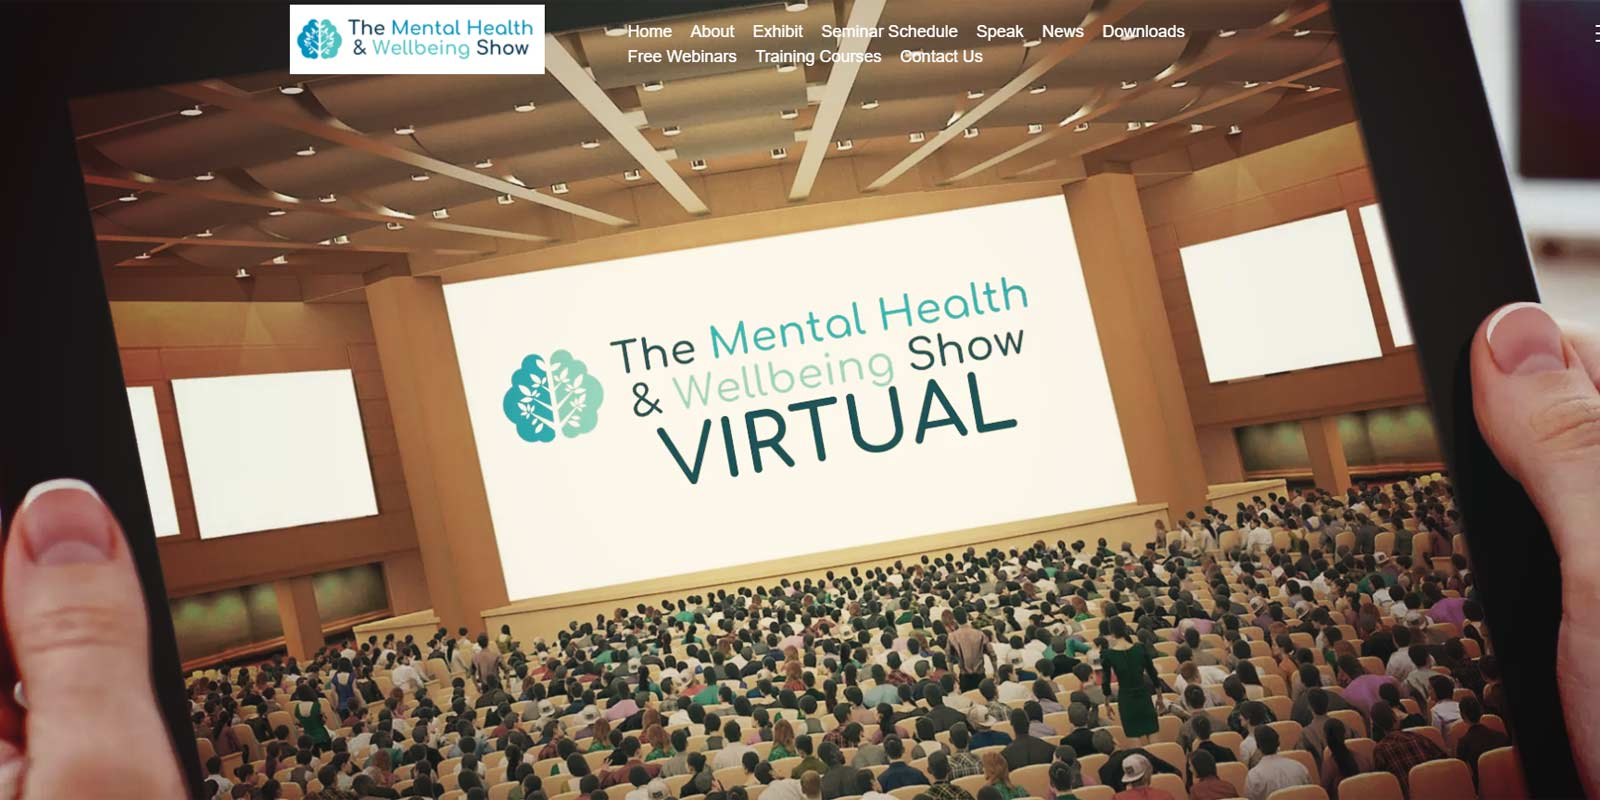 Mental Health & Wellbeing Show 2021